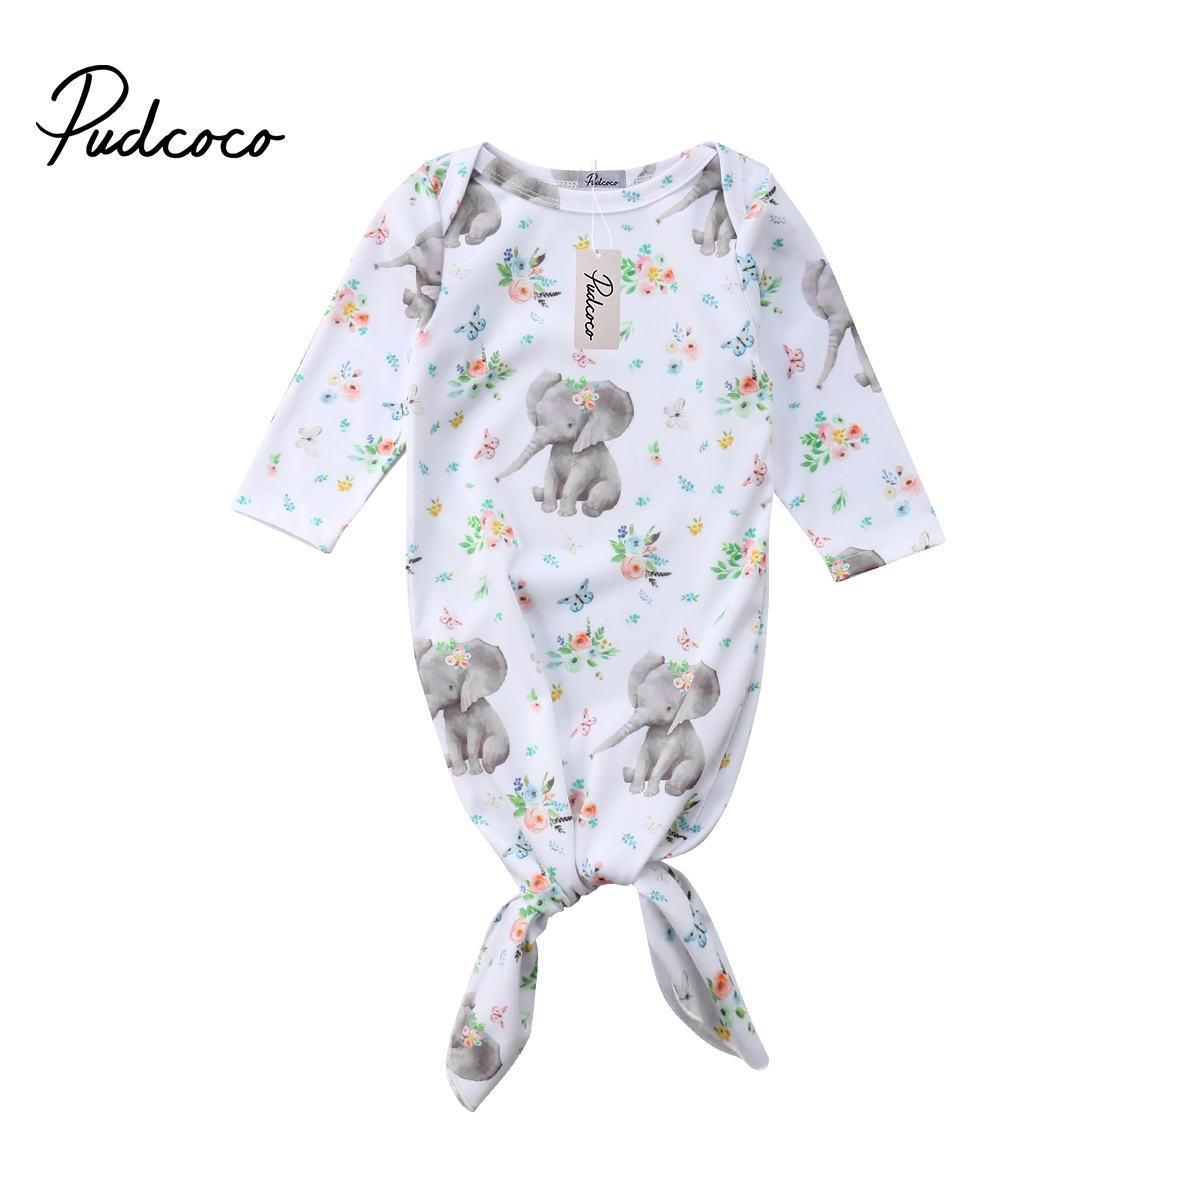 Pudcoco 2019 New Tollder Kid Baby Clothing Flowers Newborn Baby Girls Blanket Sleeping Swaddle Wrap Outfits personality CX